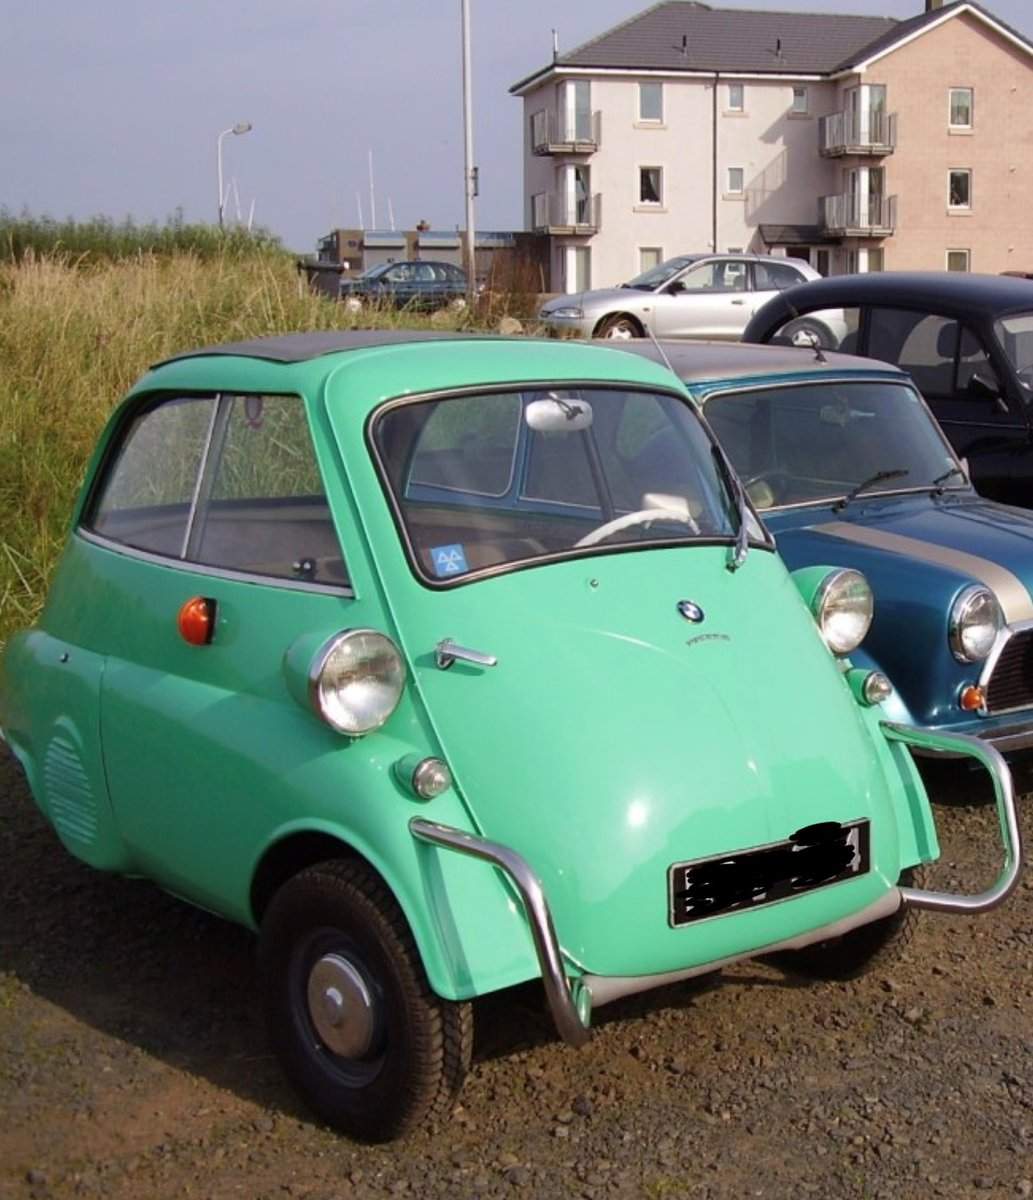 1960 BMW ISETTA BUBBLE CAR LHD FULLY RESTORED  For Sale (picture 5 of 5)